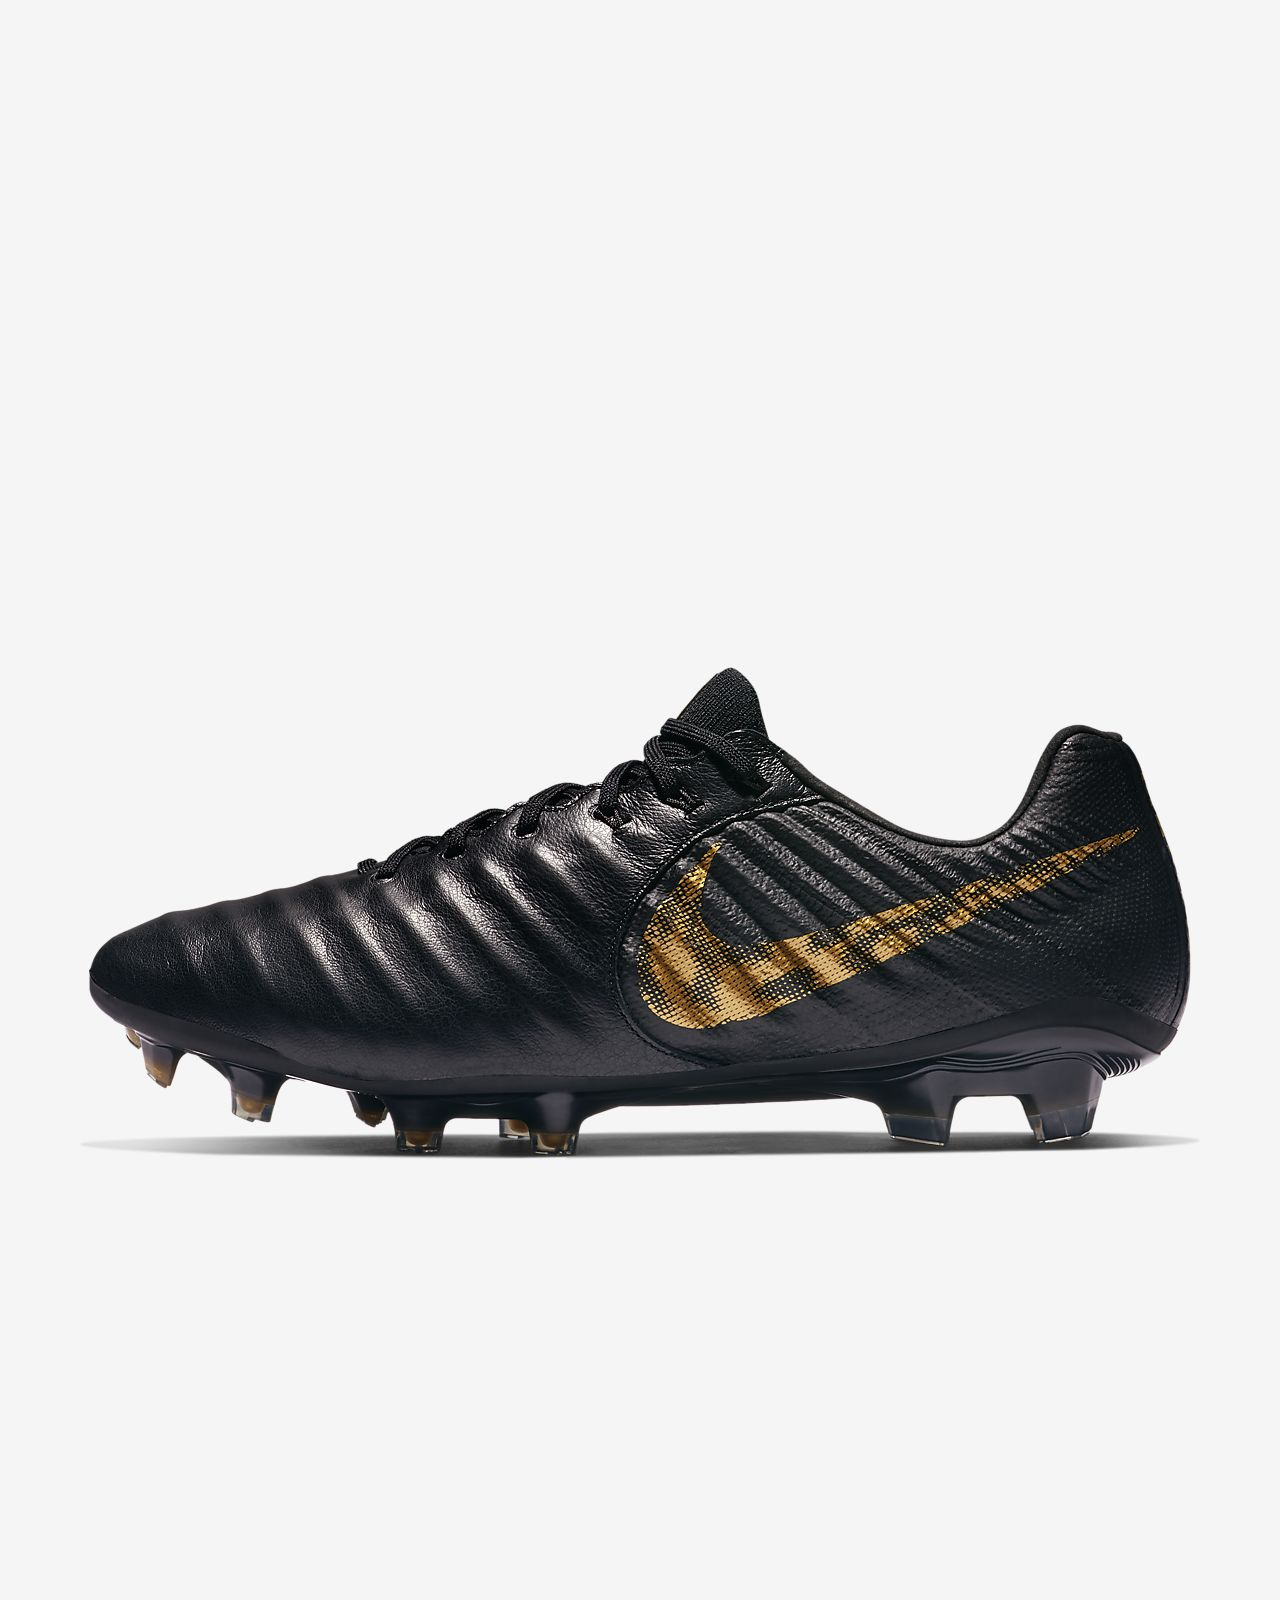 Nike Legend 7 Elite FG Firm-Ground Soccer Cleat